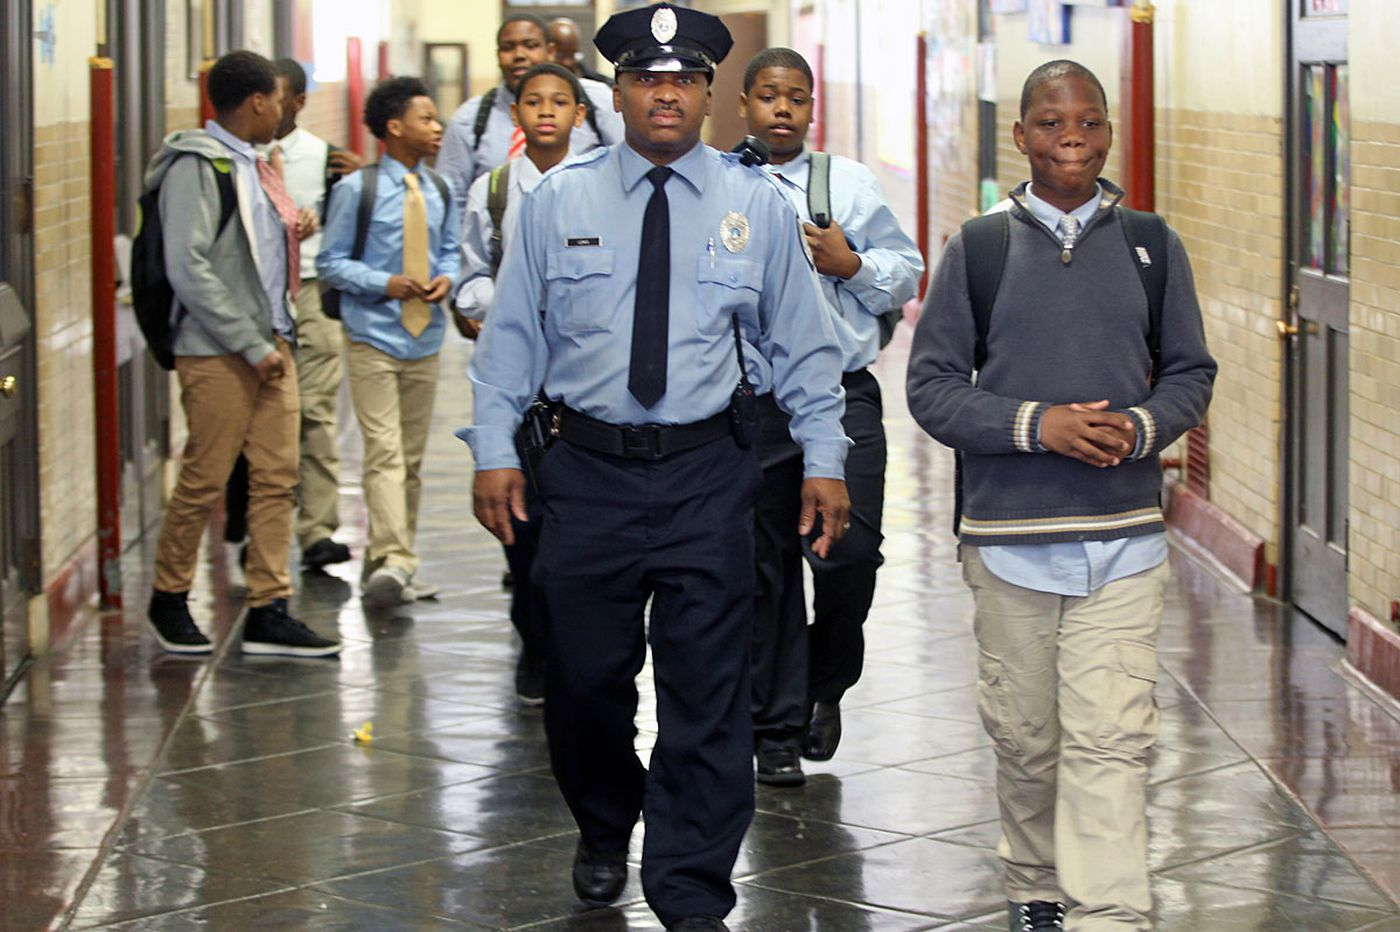 ACLU report says Pa. schools need fewer arrests, more mental-health aid